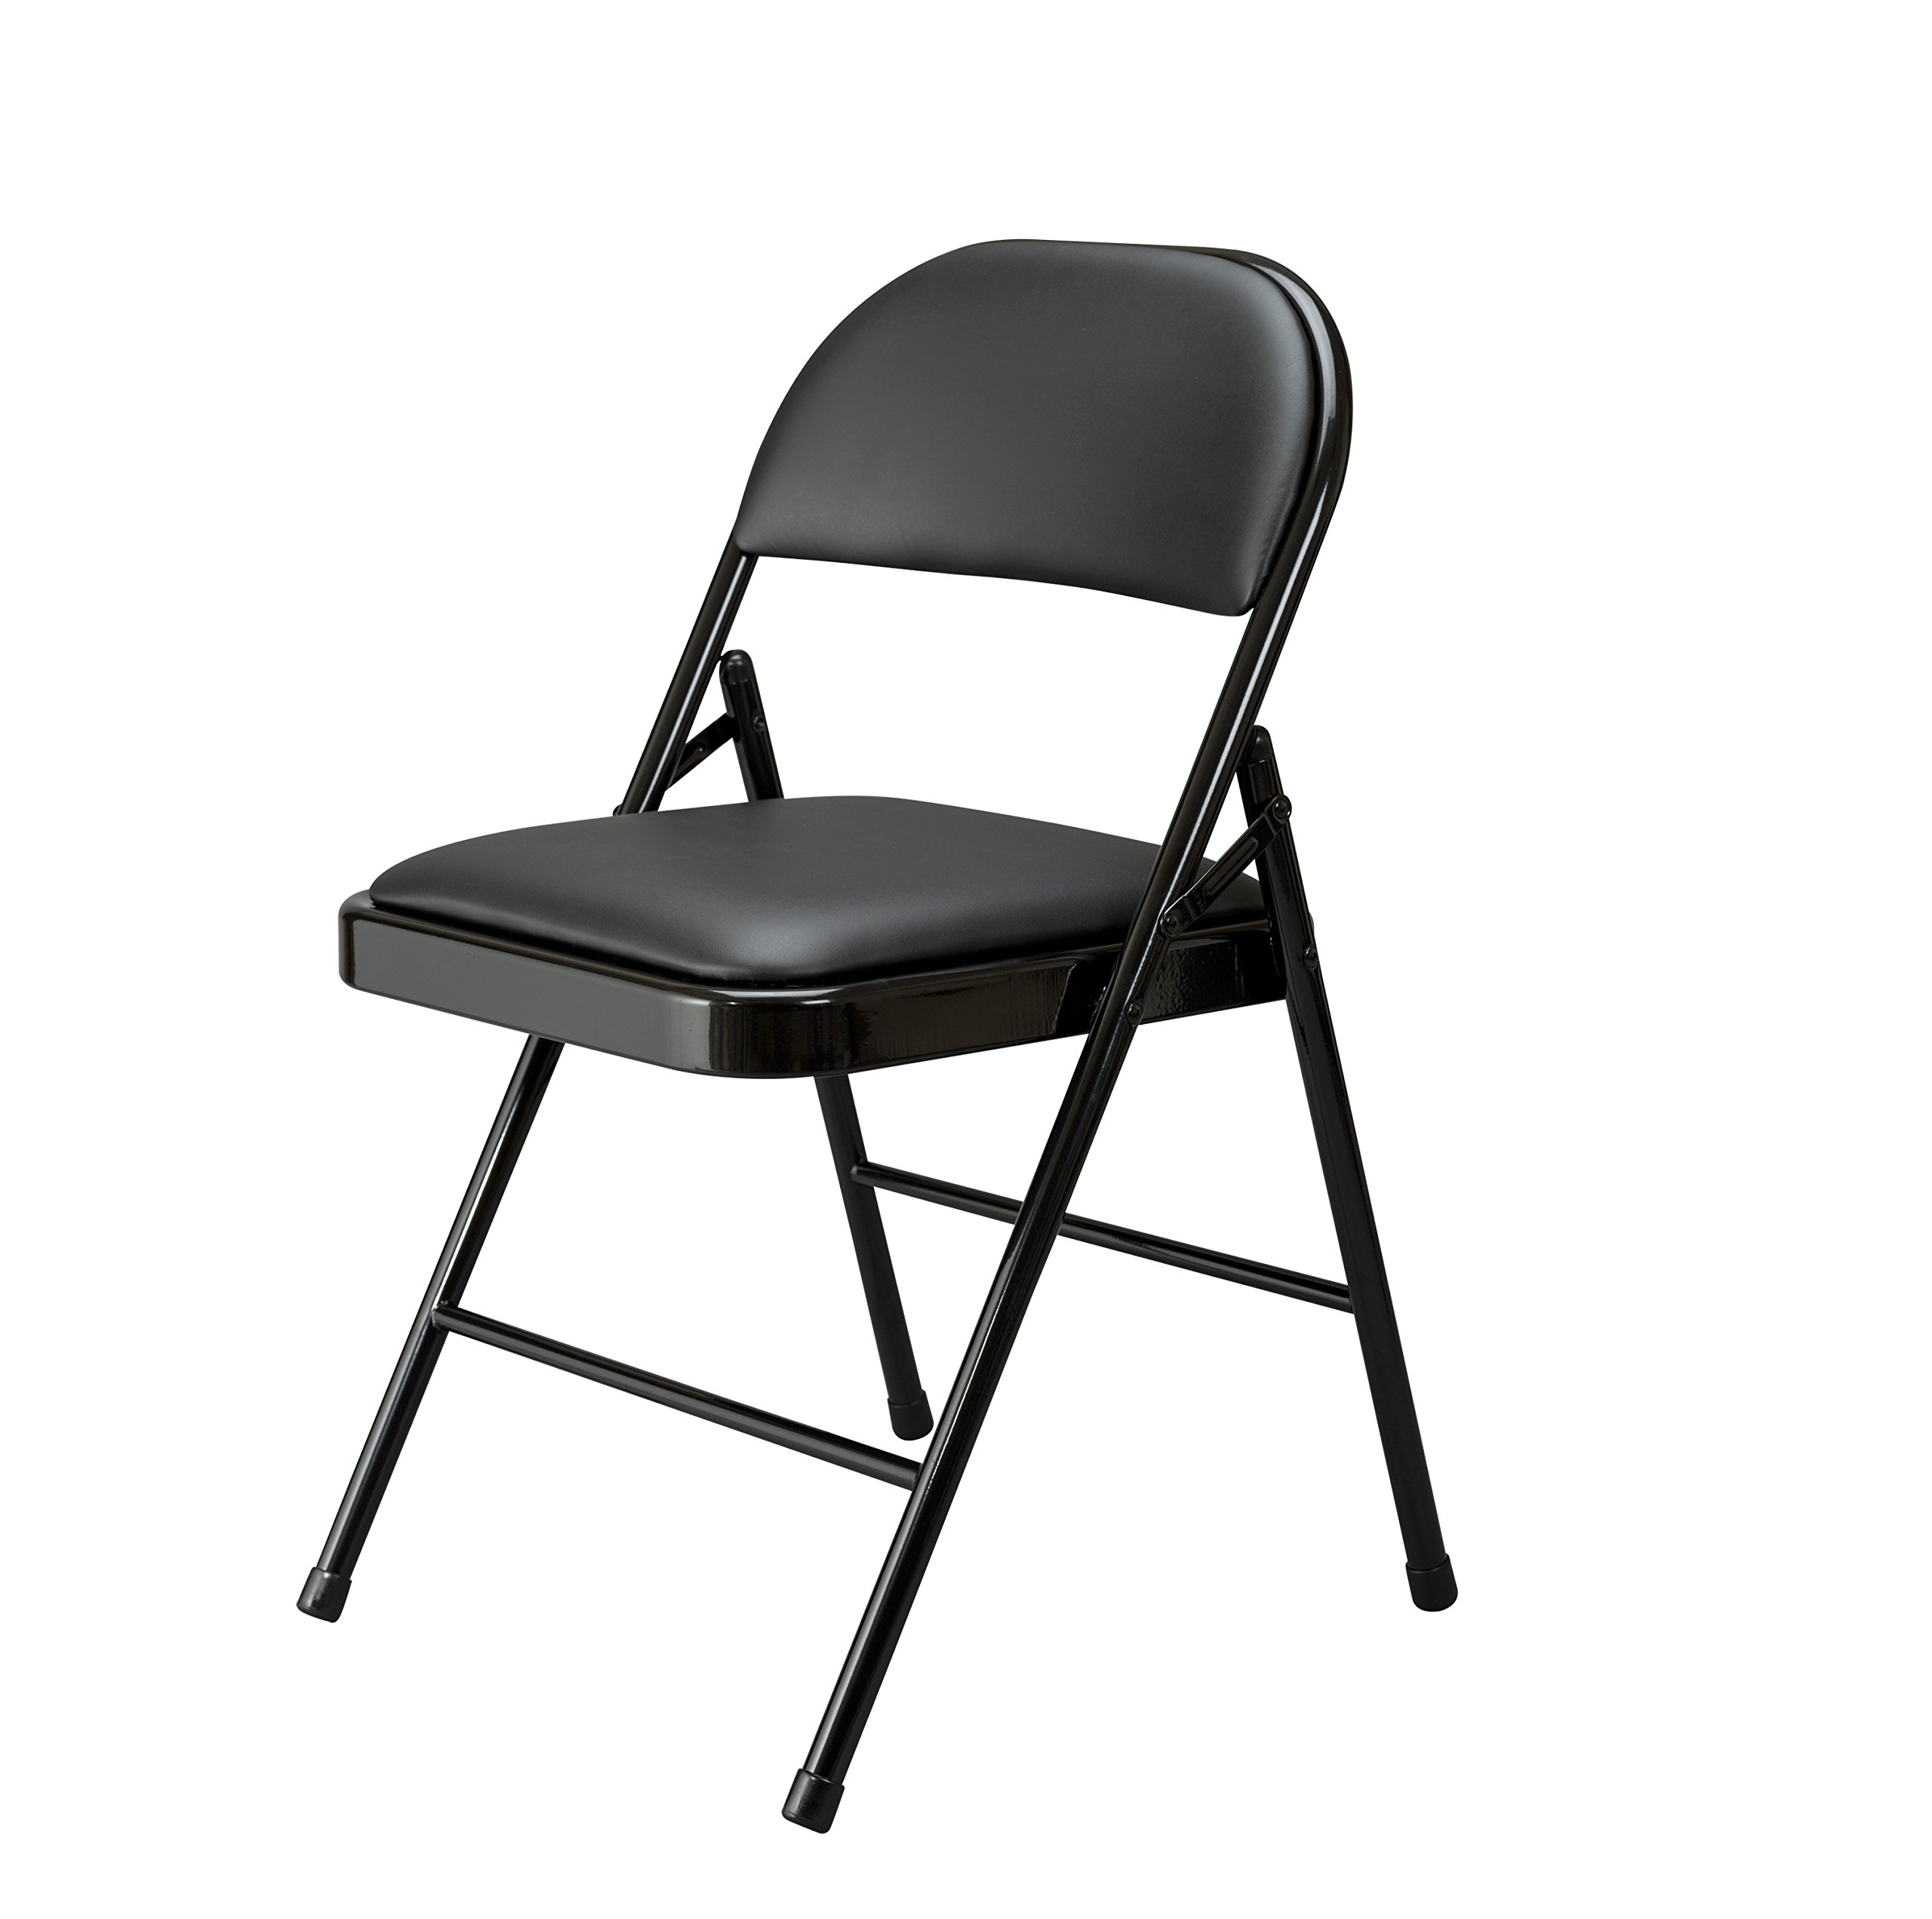 Essentials Multipurpose Padded Metal Folding Chair, Black - 4 Pack (ESS-8210-BLK) by OFM